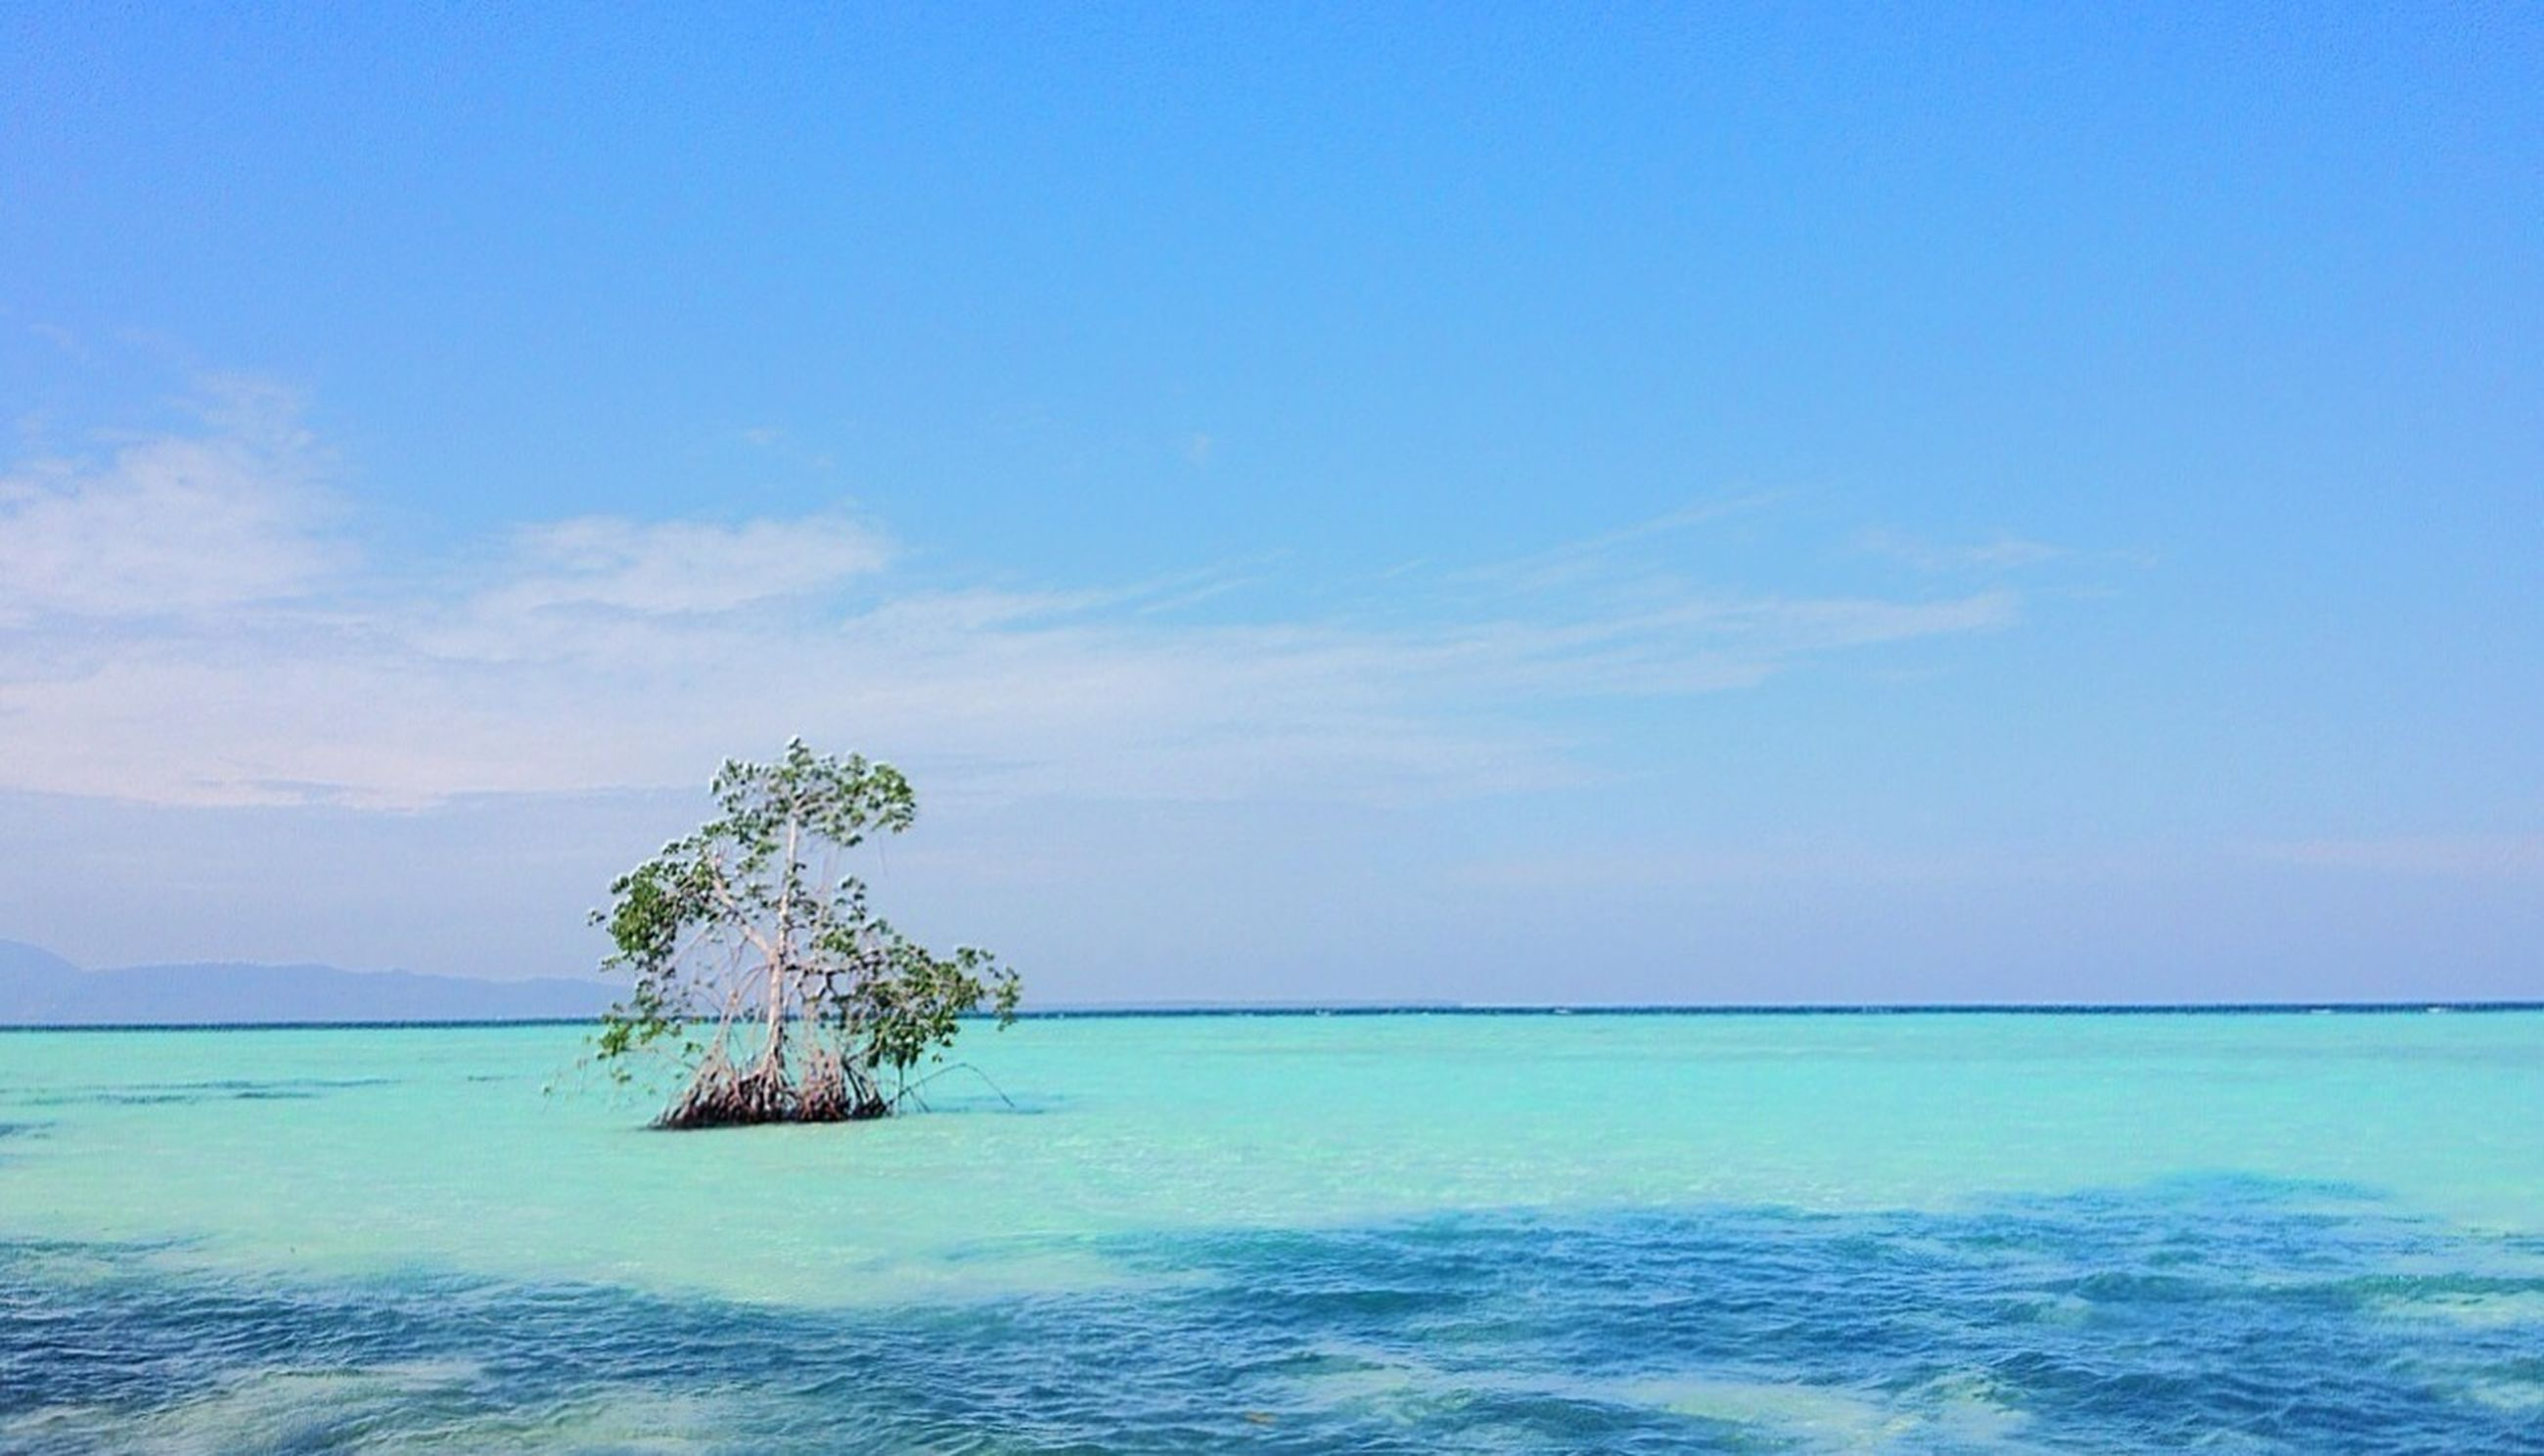 water, sea, blue, tranquil scene, tranquility, scenics, waterfront, horizon over water, beauty in nature, sky, nature, copy space, idyllic, tree, rippled, calm, seascape, clear sky, day, ocean